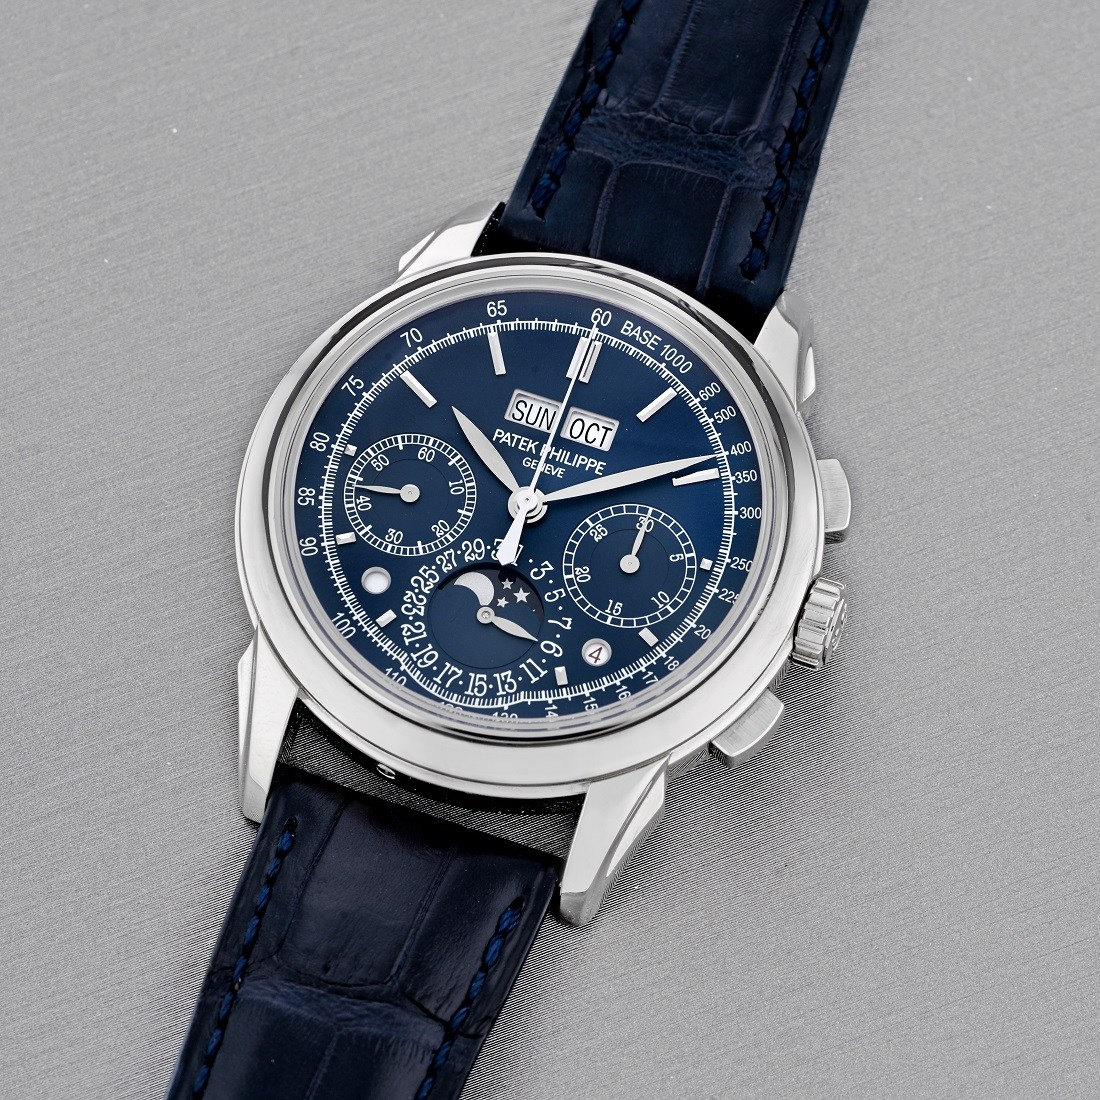 Once a Lifetime: Christie's Vintage Patek Philippe Selling Exhibition Swiss Made Replica Watches